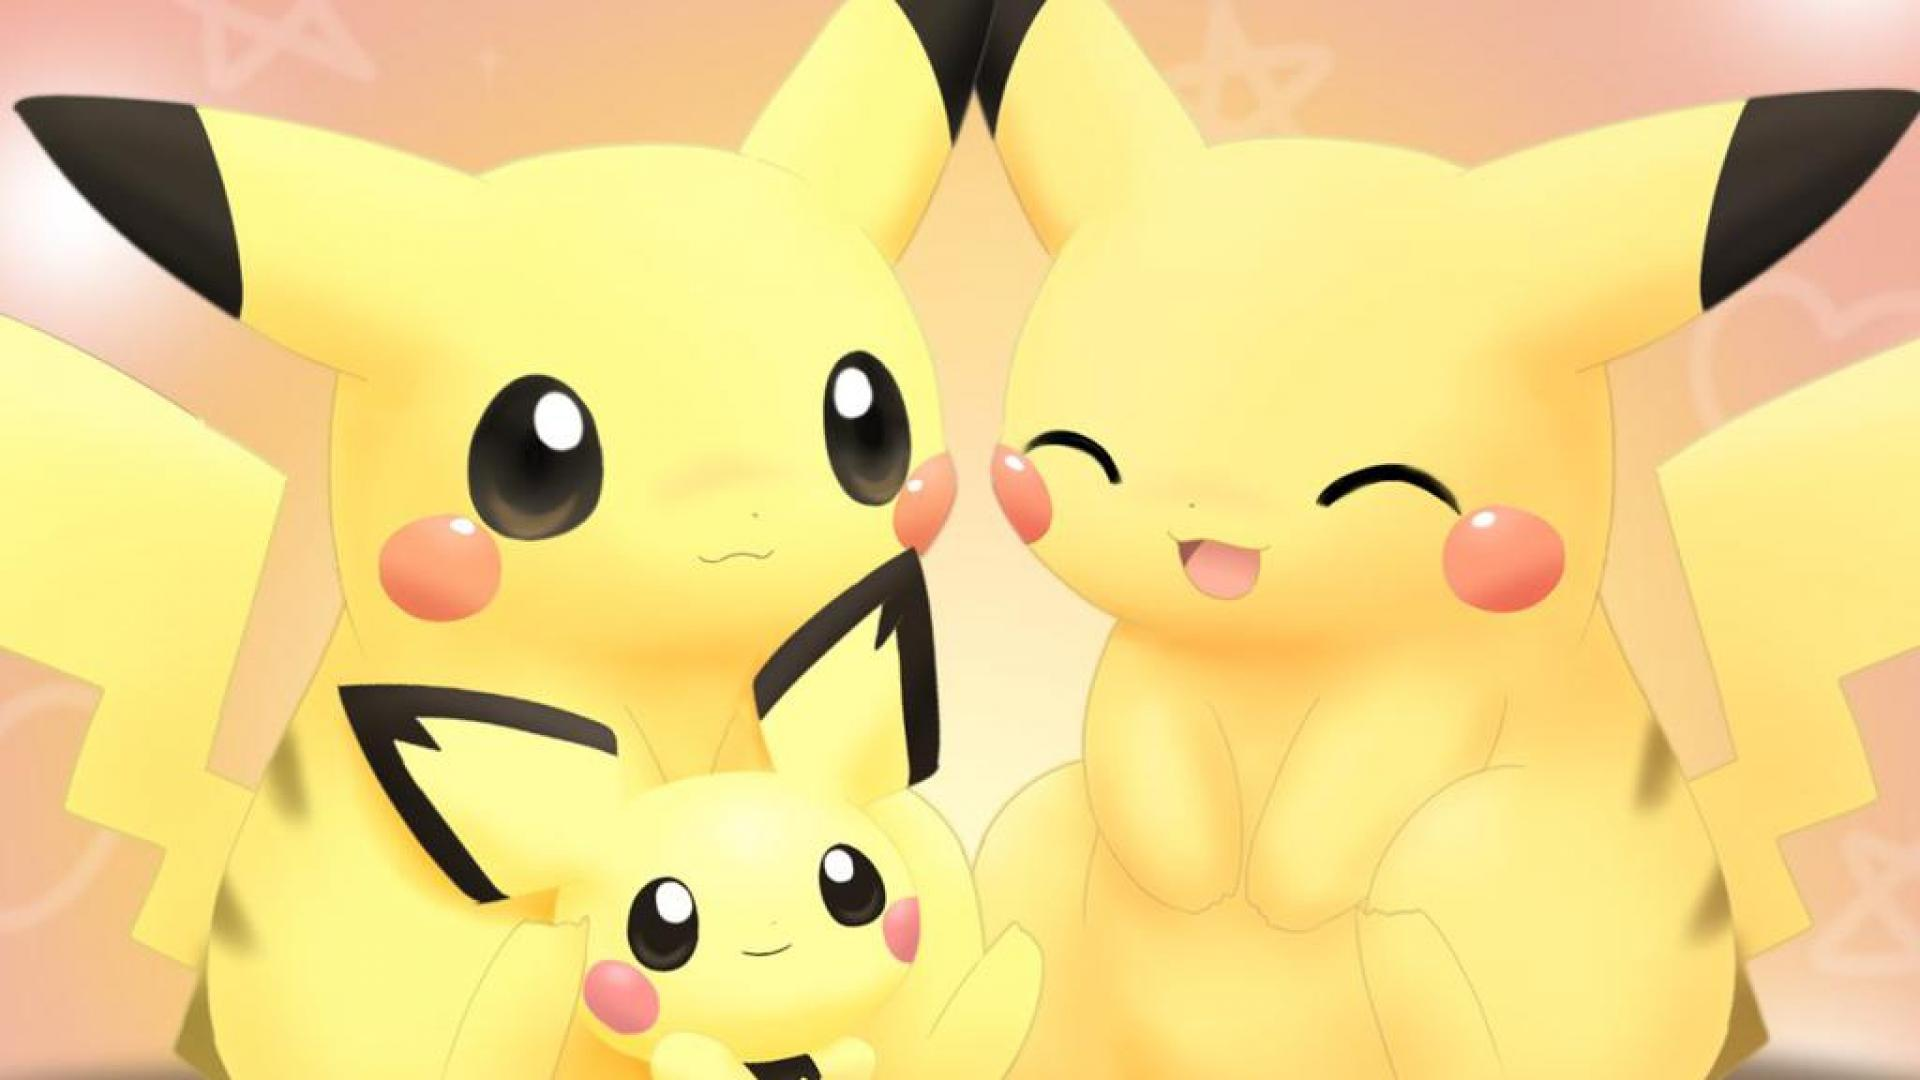 Pikachu family   110661   High Quality and Resolution Wallpapers on 1920x1080